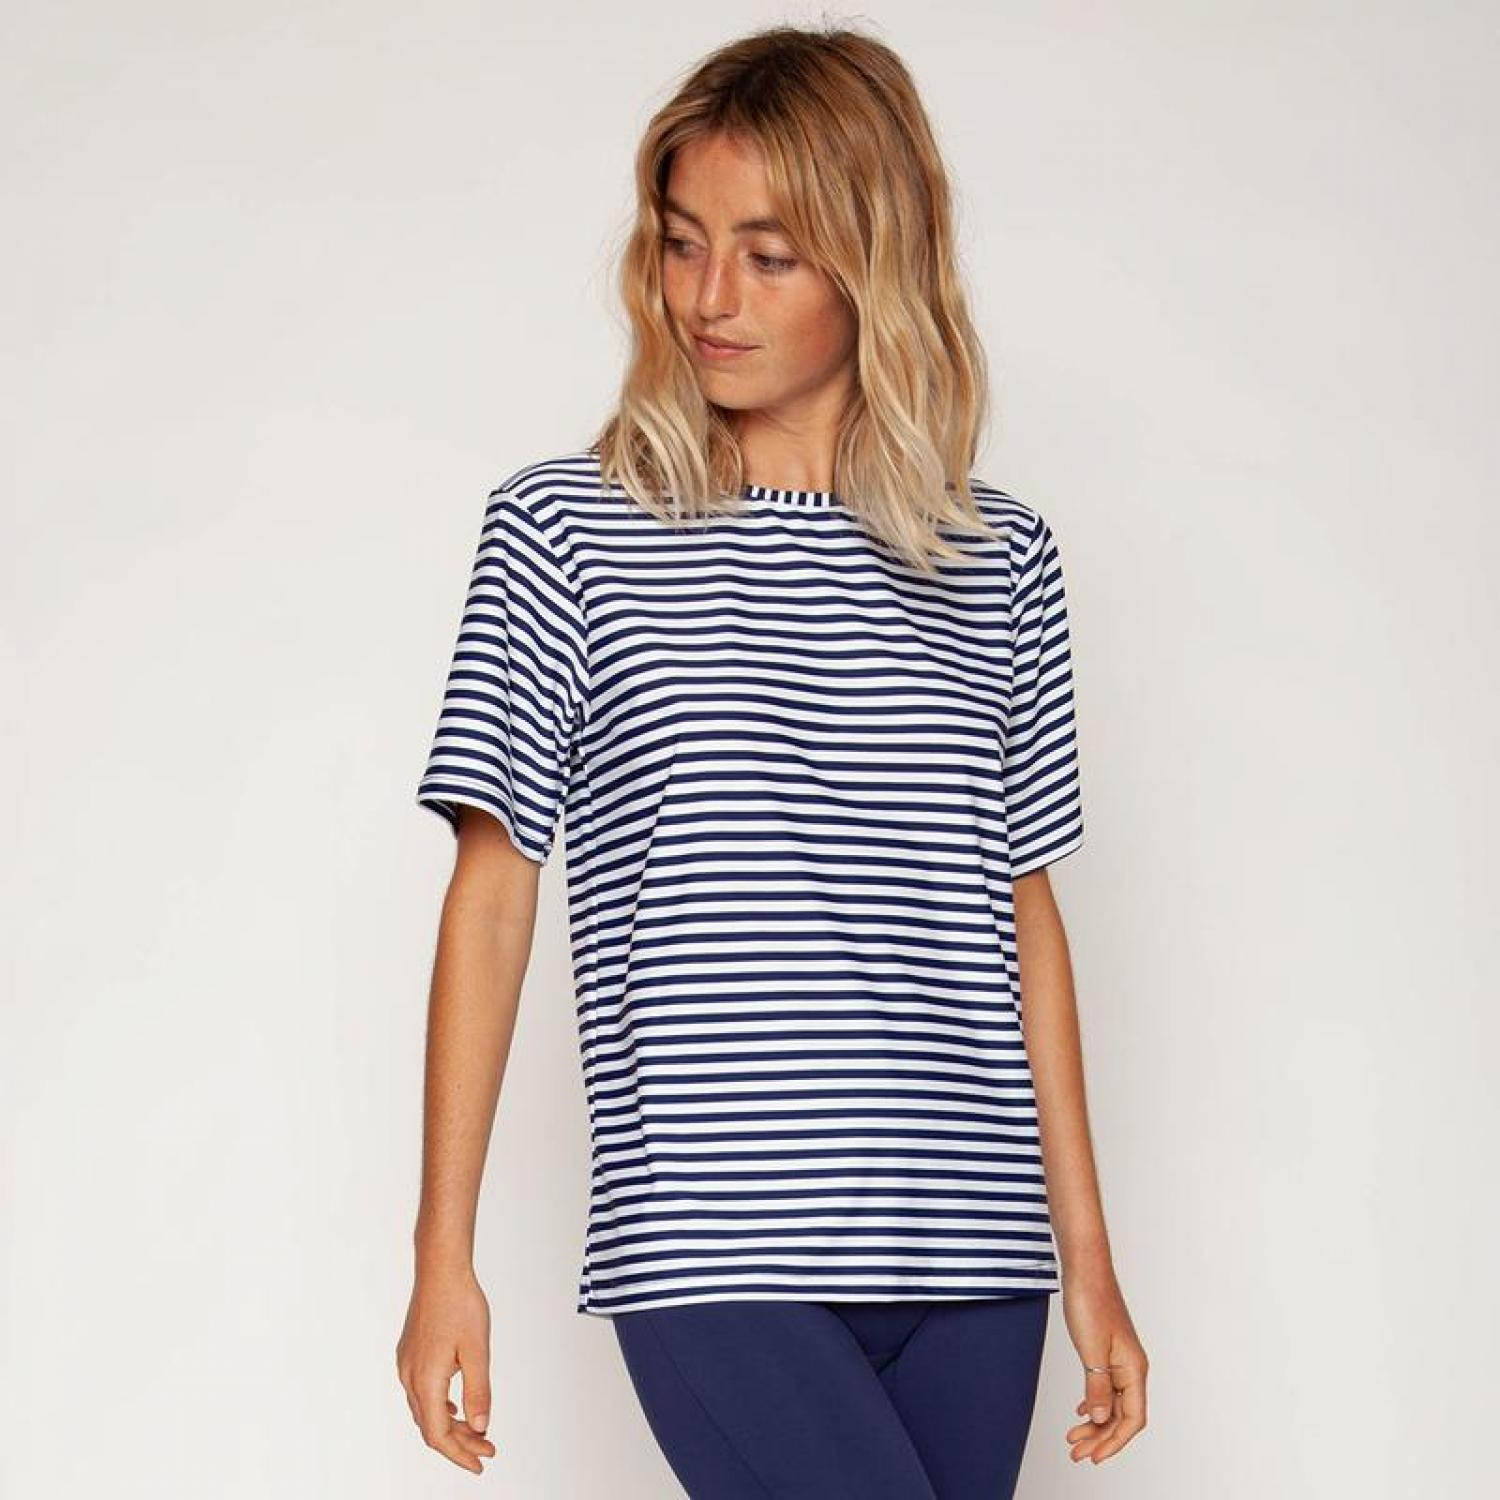 Seea Glenn Surf Tee Stripes